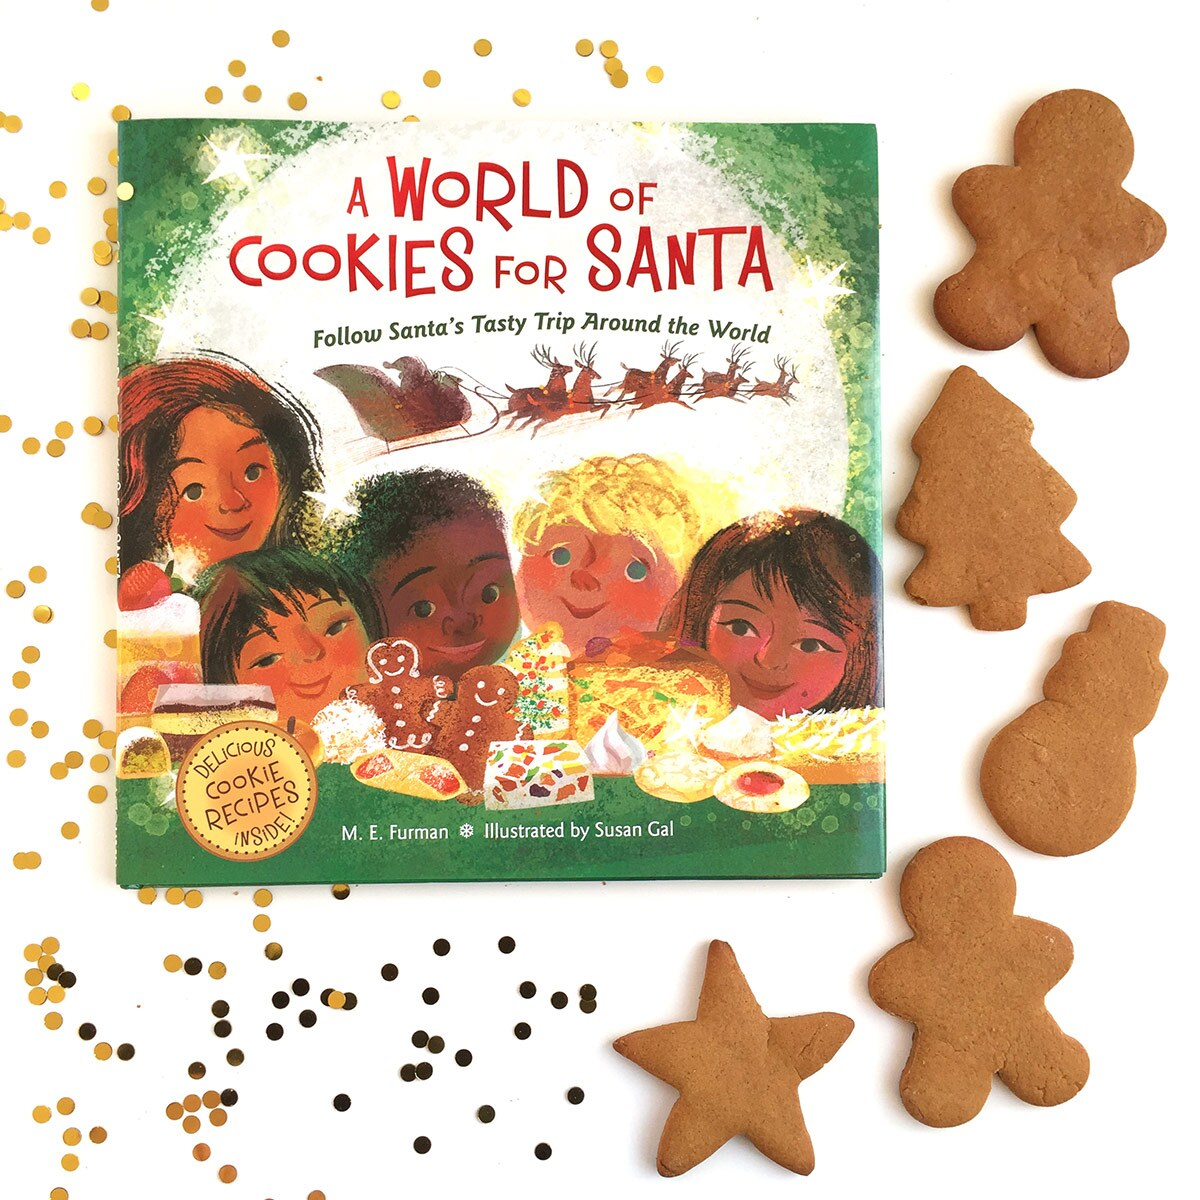 """Book cover of """"A World of Cookies for Santa"""" written by M.E. Furman and illustrated by Susan Gal surrounded by brown holiday cookies."""